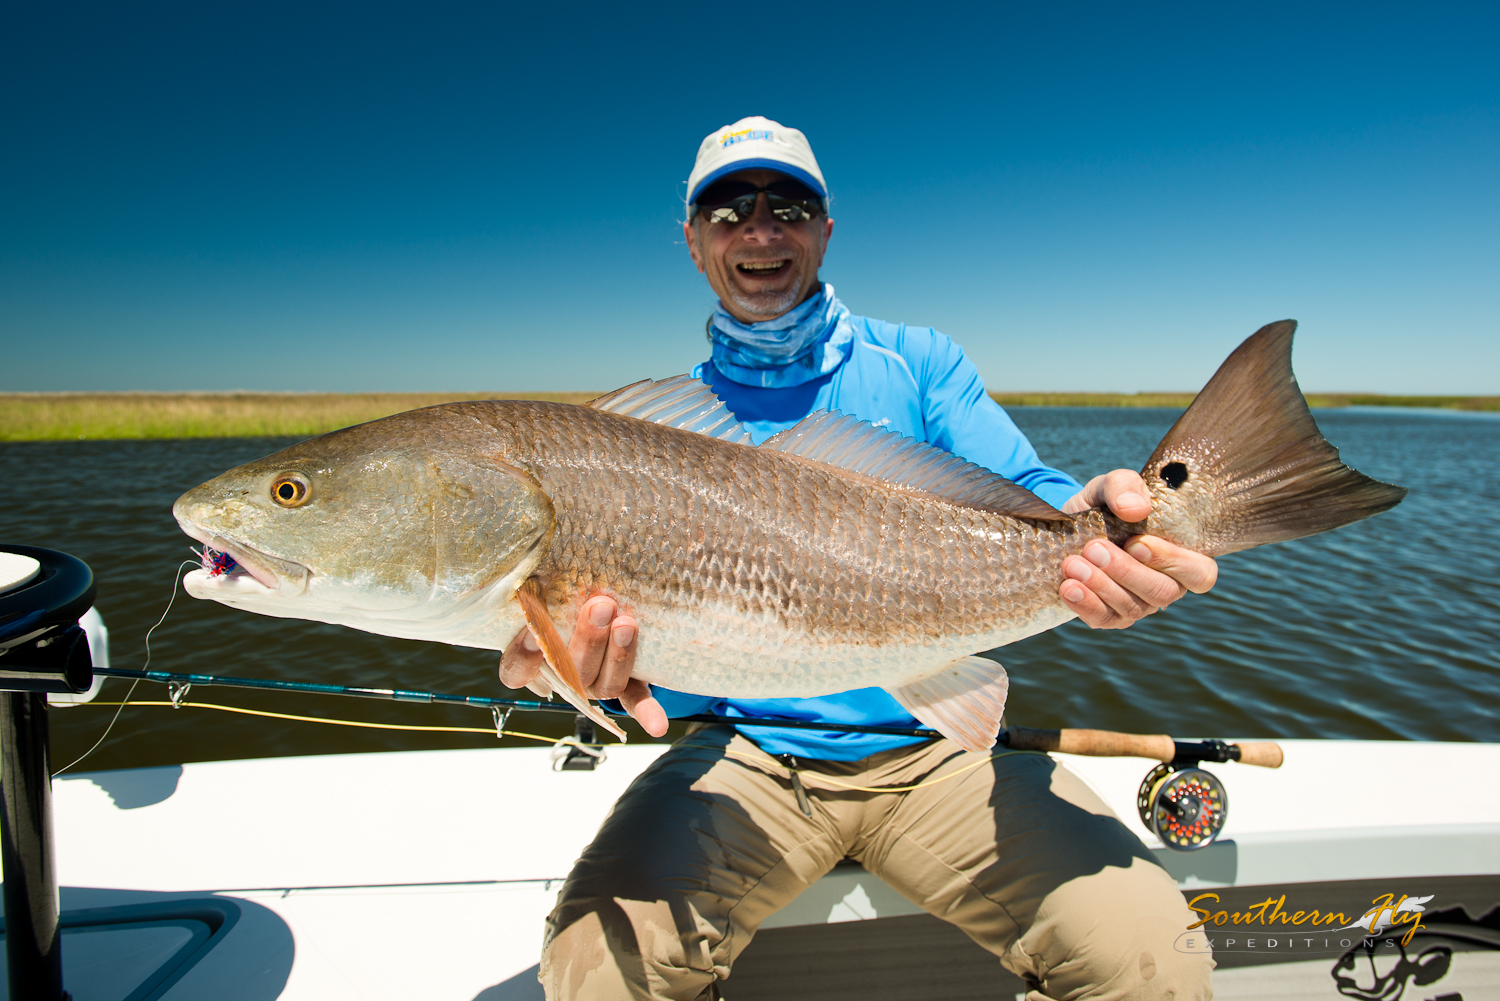 Fly Fishing New Orleans with Southern Fly Expeditions and Captain Brandon Keck